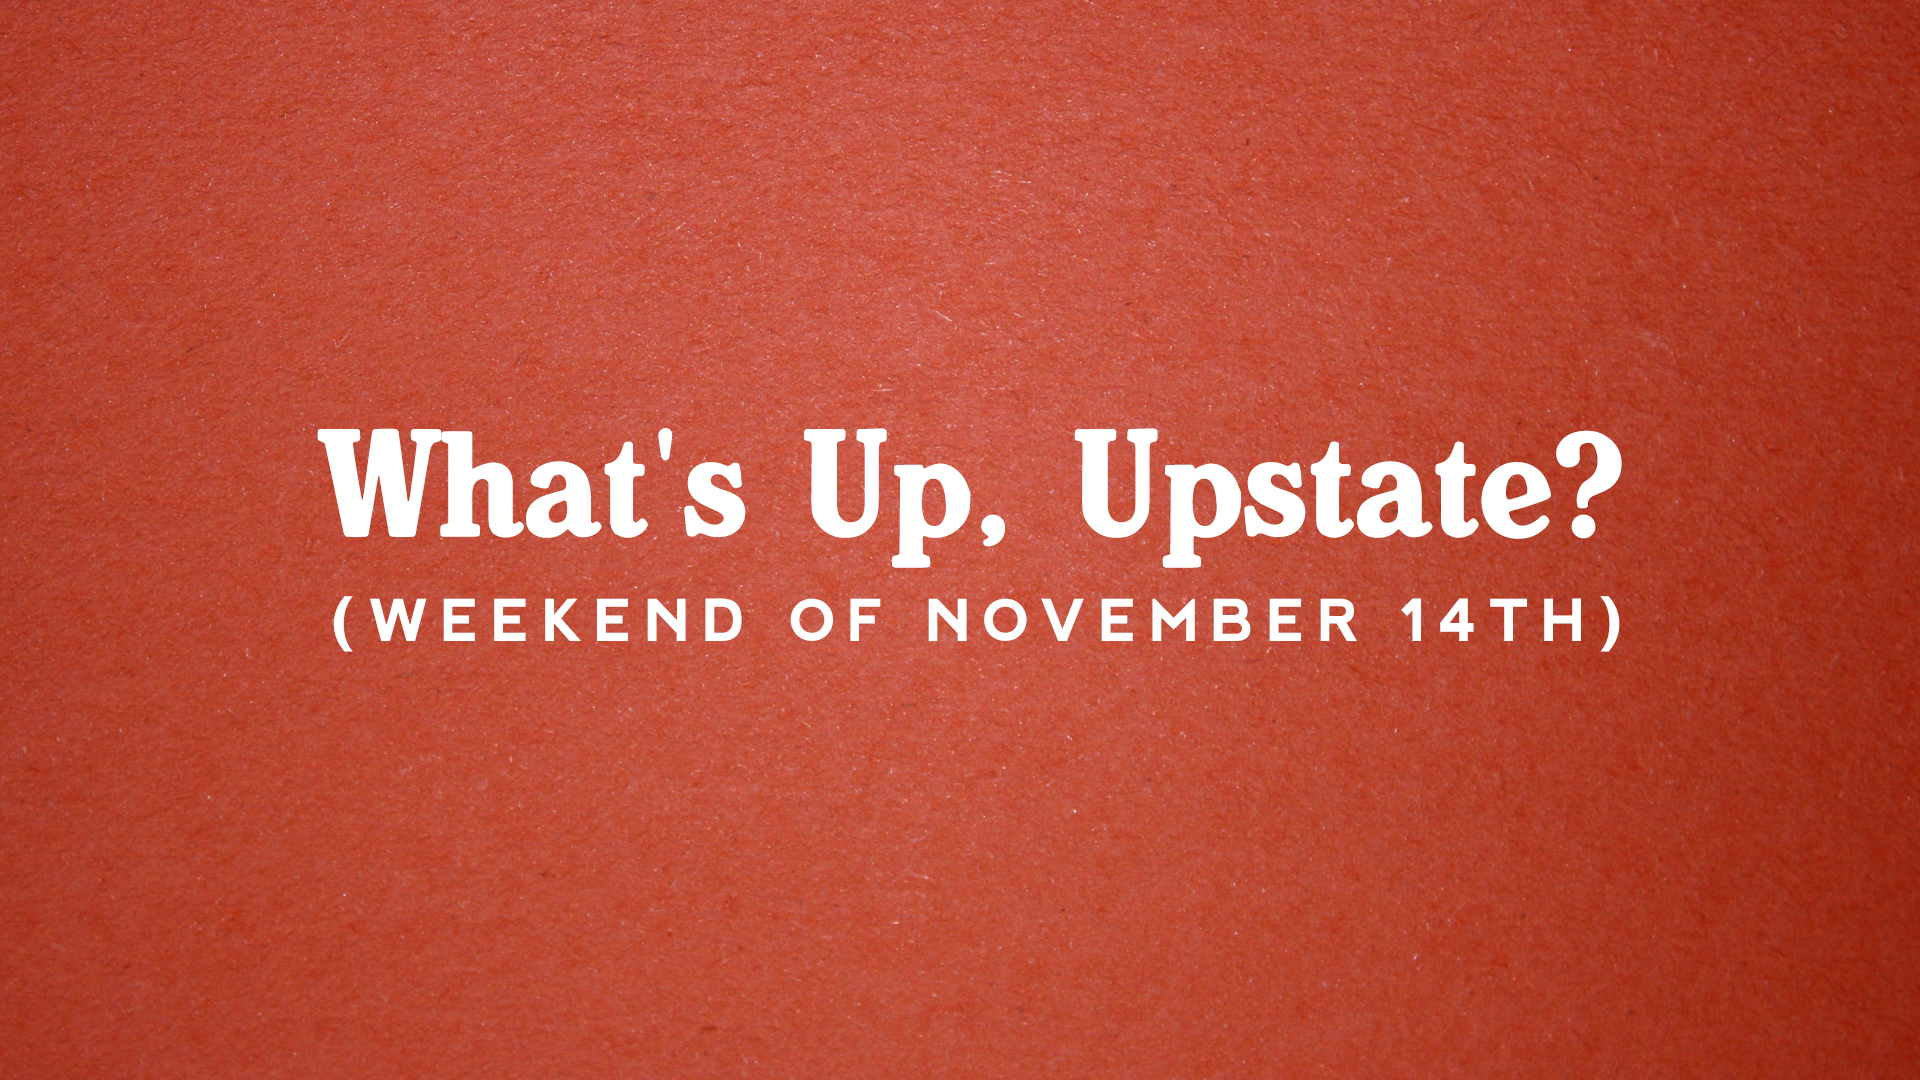 What's Up, Upstate? – Weekend of 11/14 to 11/17